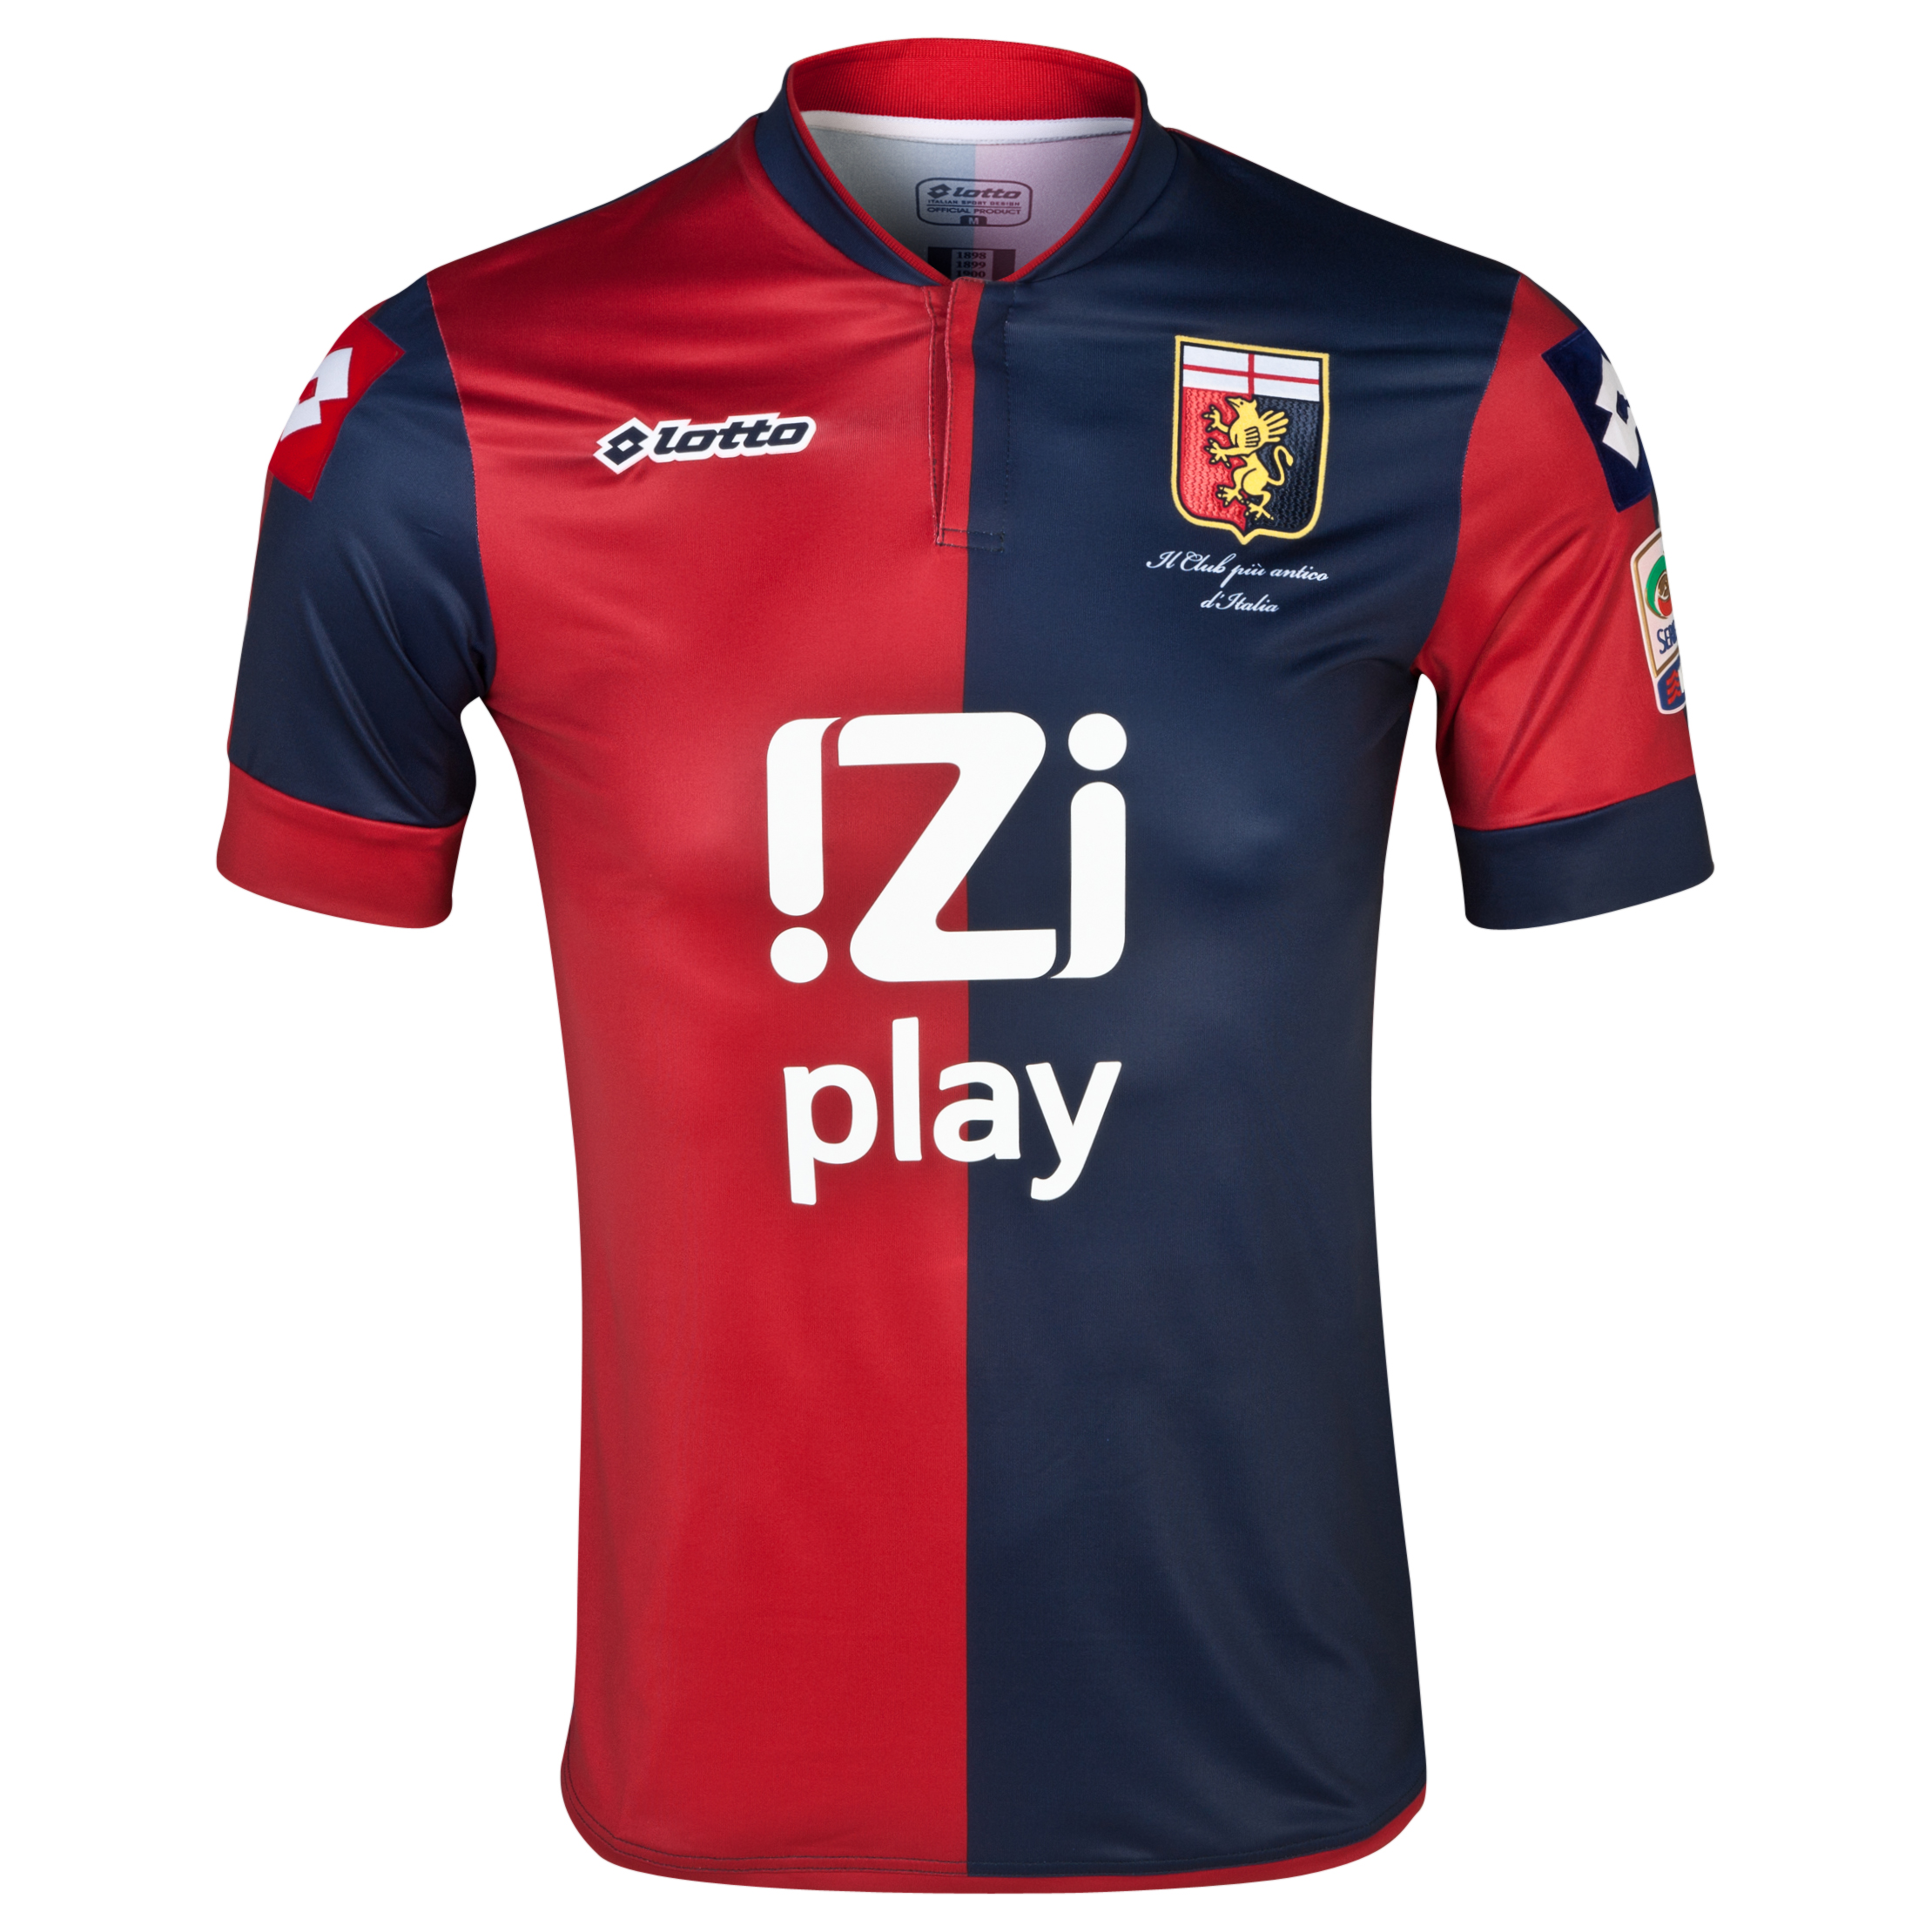 Genoa Home Shirt 2013/14